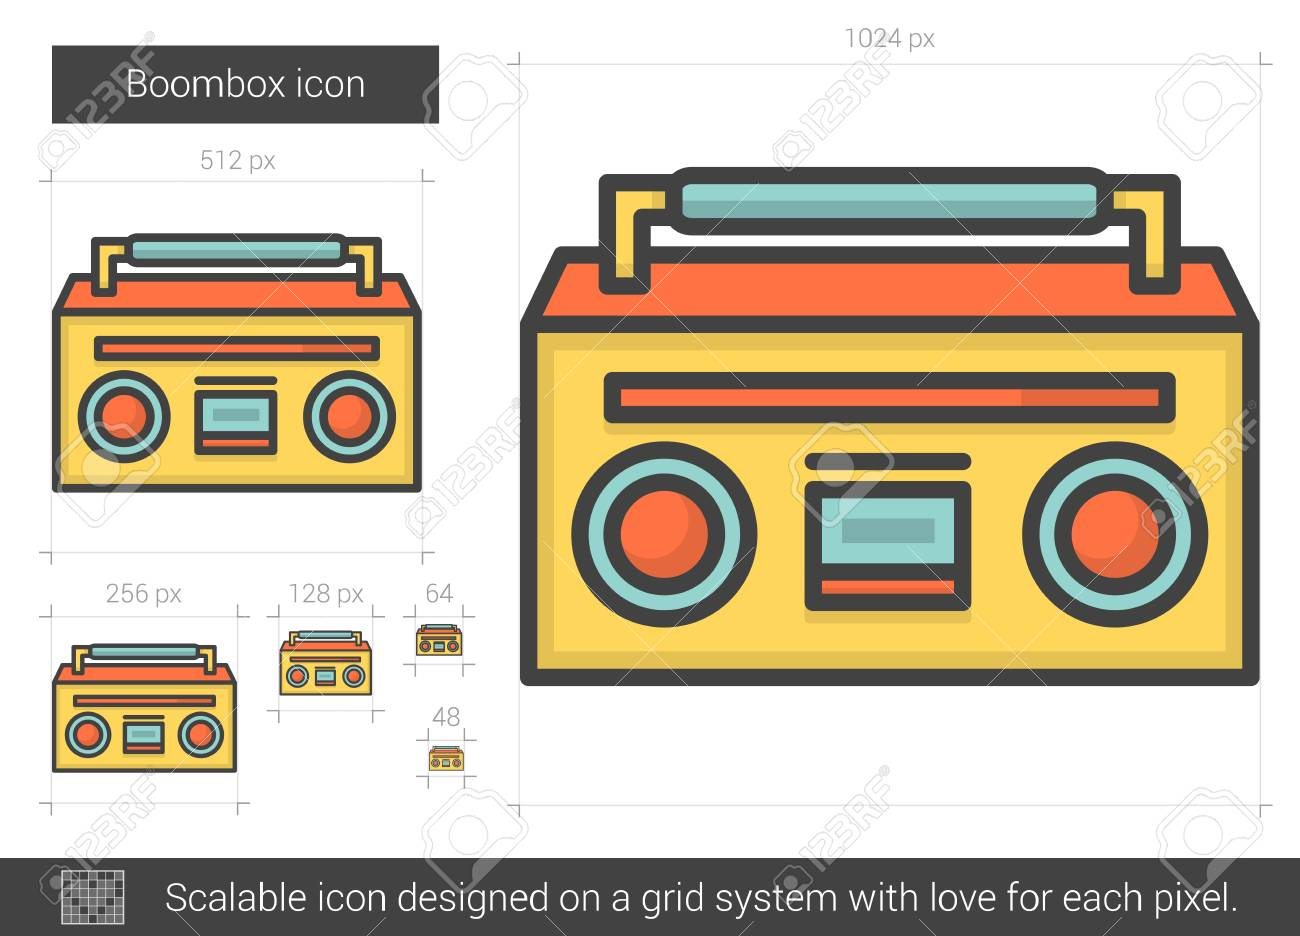 boombox vector line icon isolated on white background boombox rh 123rf com boombox vector icon boombox vector image